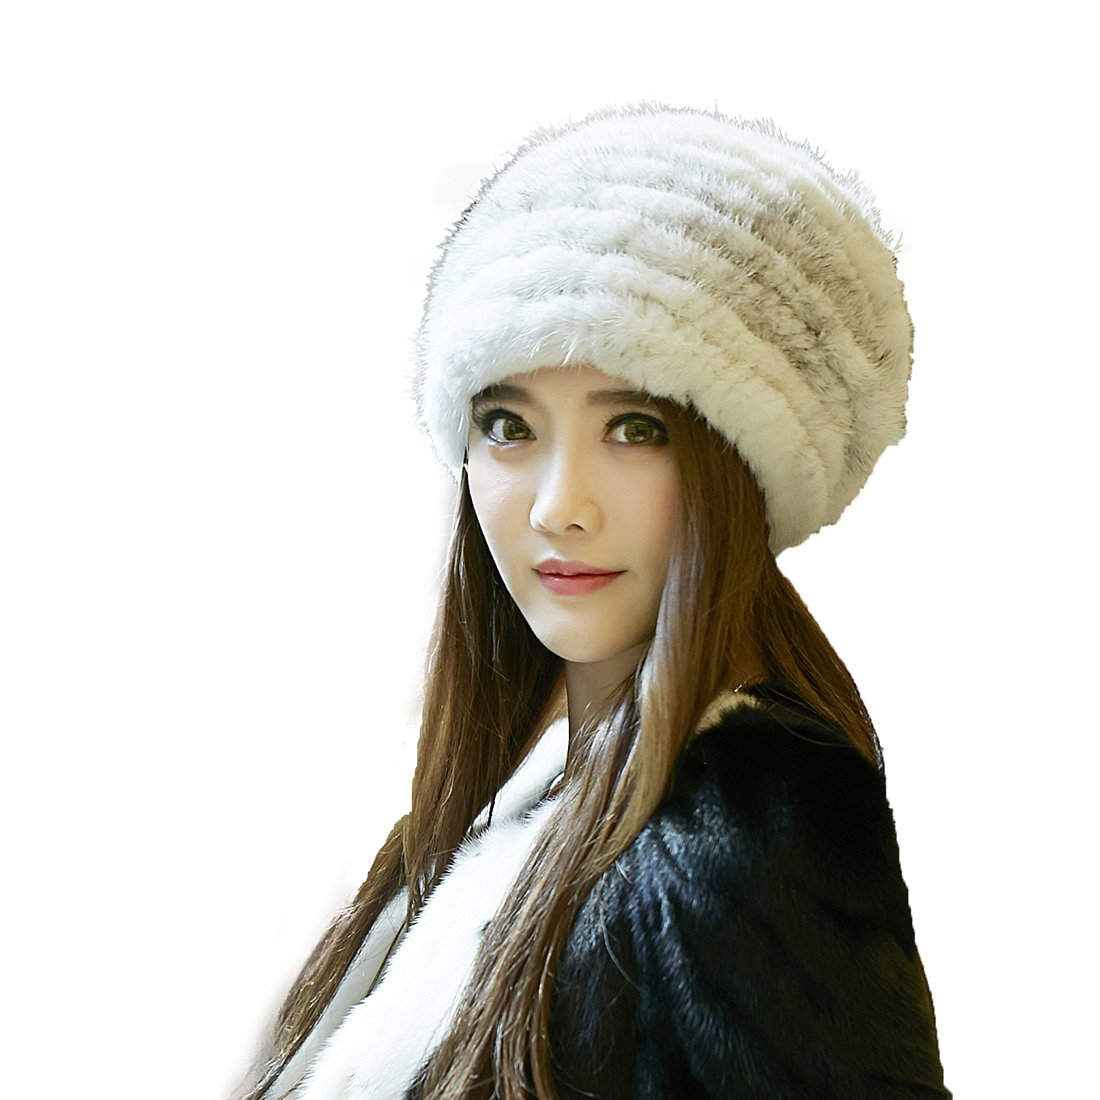 URSFUR Knited Mink Fur Beanie Hat with Silver Fox Fur Pom Pom (One Size Fits All, Sapphire)